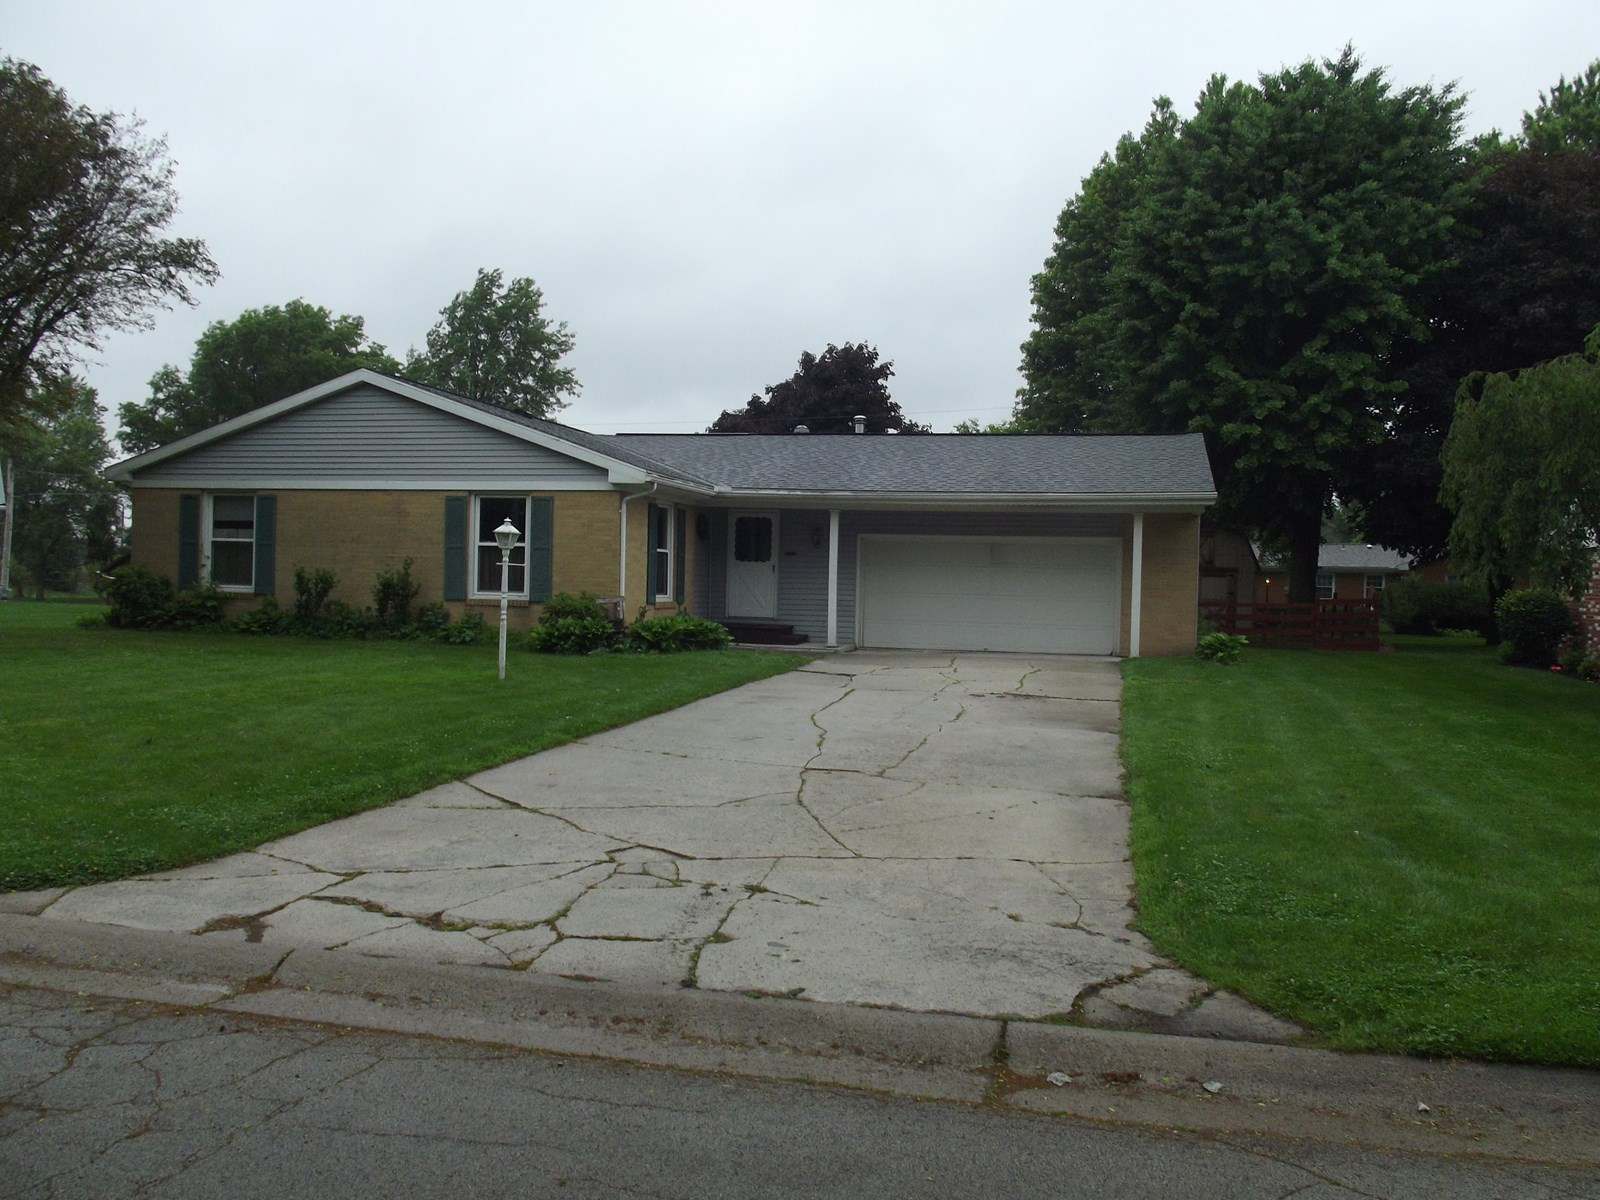 Real Estate Auction - July 15th @ 6pm